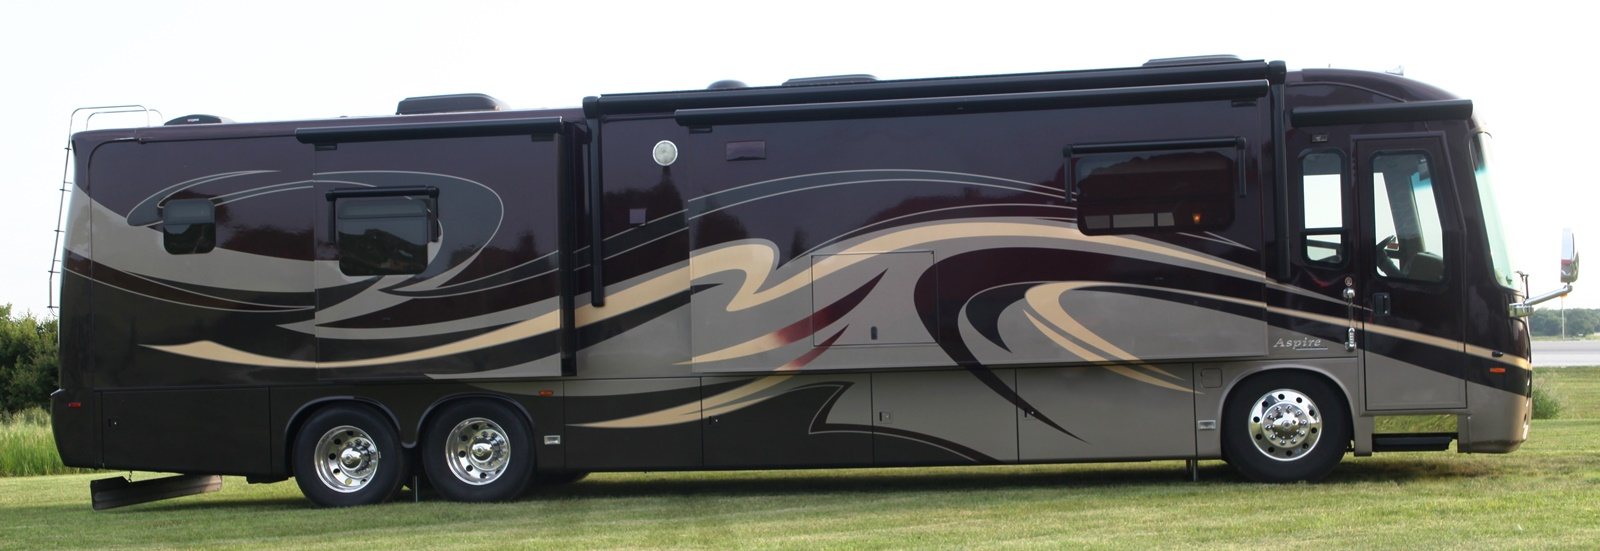 Used Motorhomes For Sale By Owner >> 2012 Entegra Aspire 42RBQ | Used Motorhomes and RVs for sale